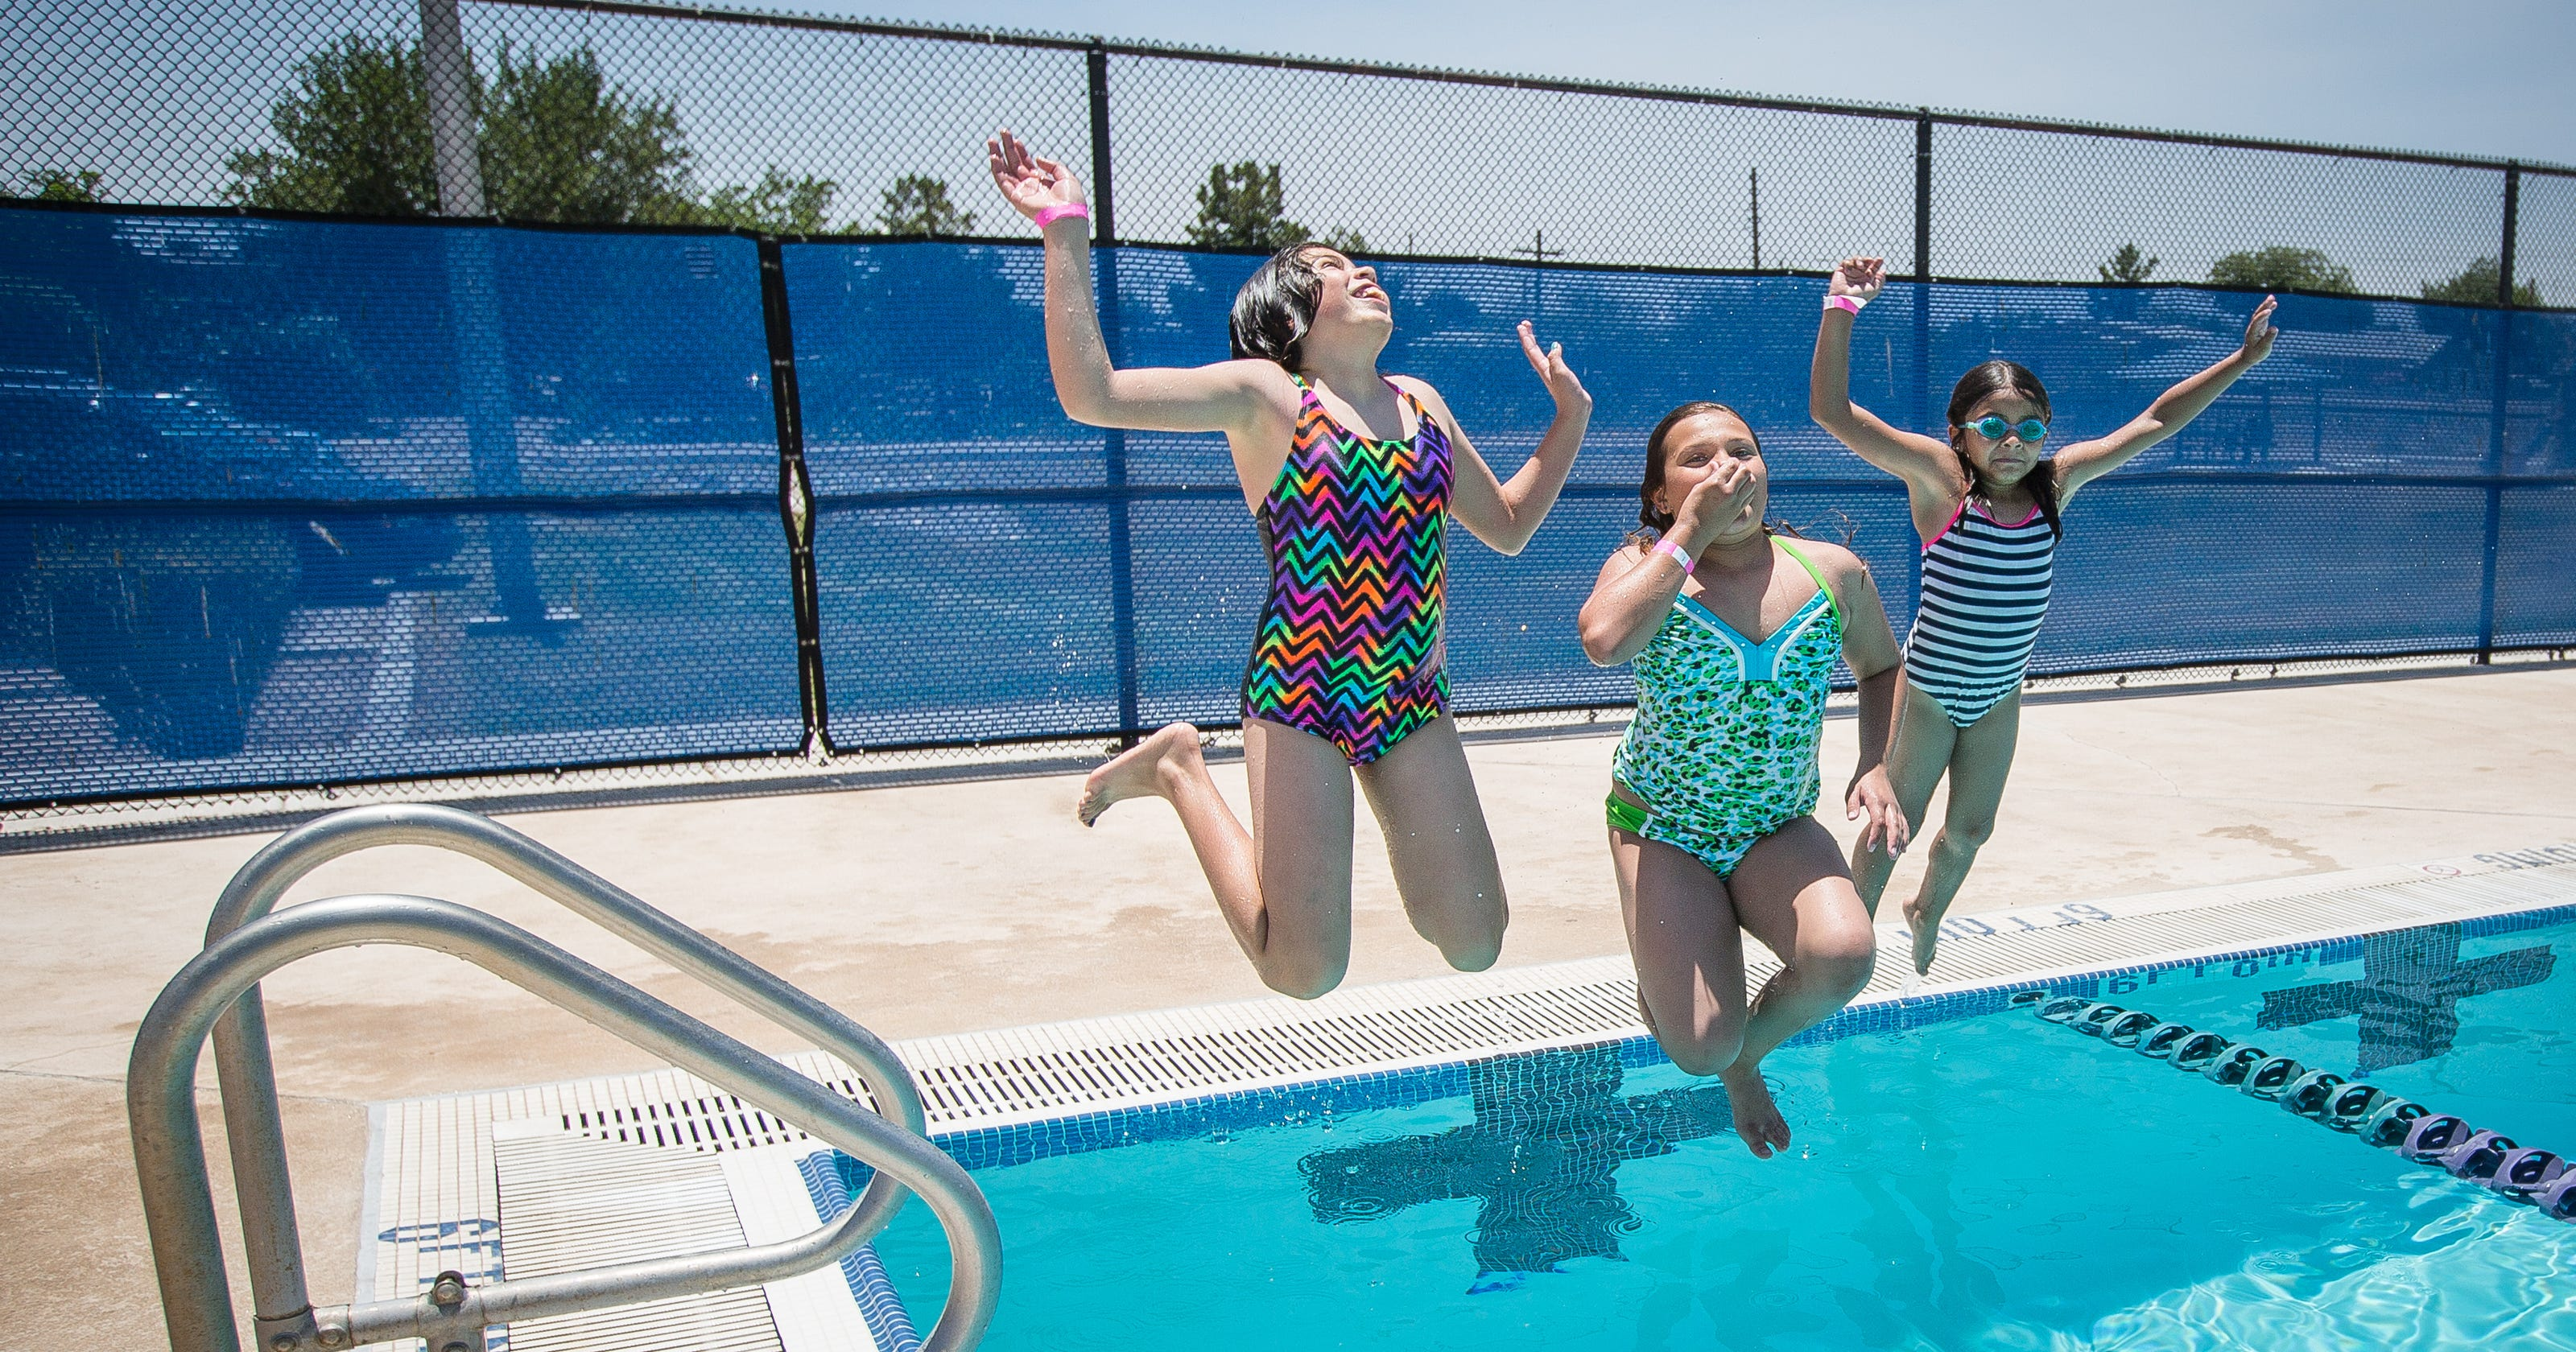 City schedules free swim days at outdoor pools for Public swimming pools in las cruces nm